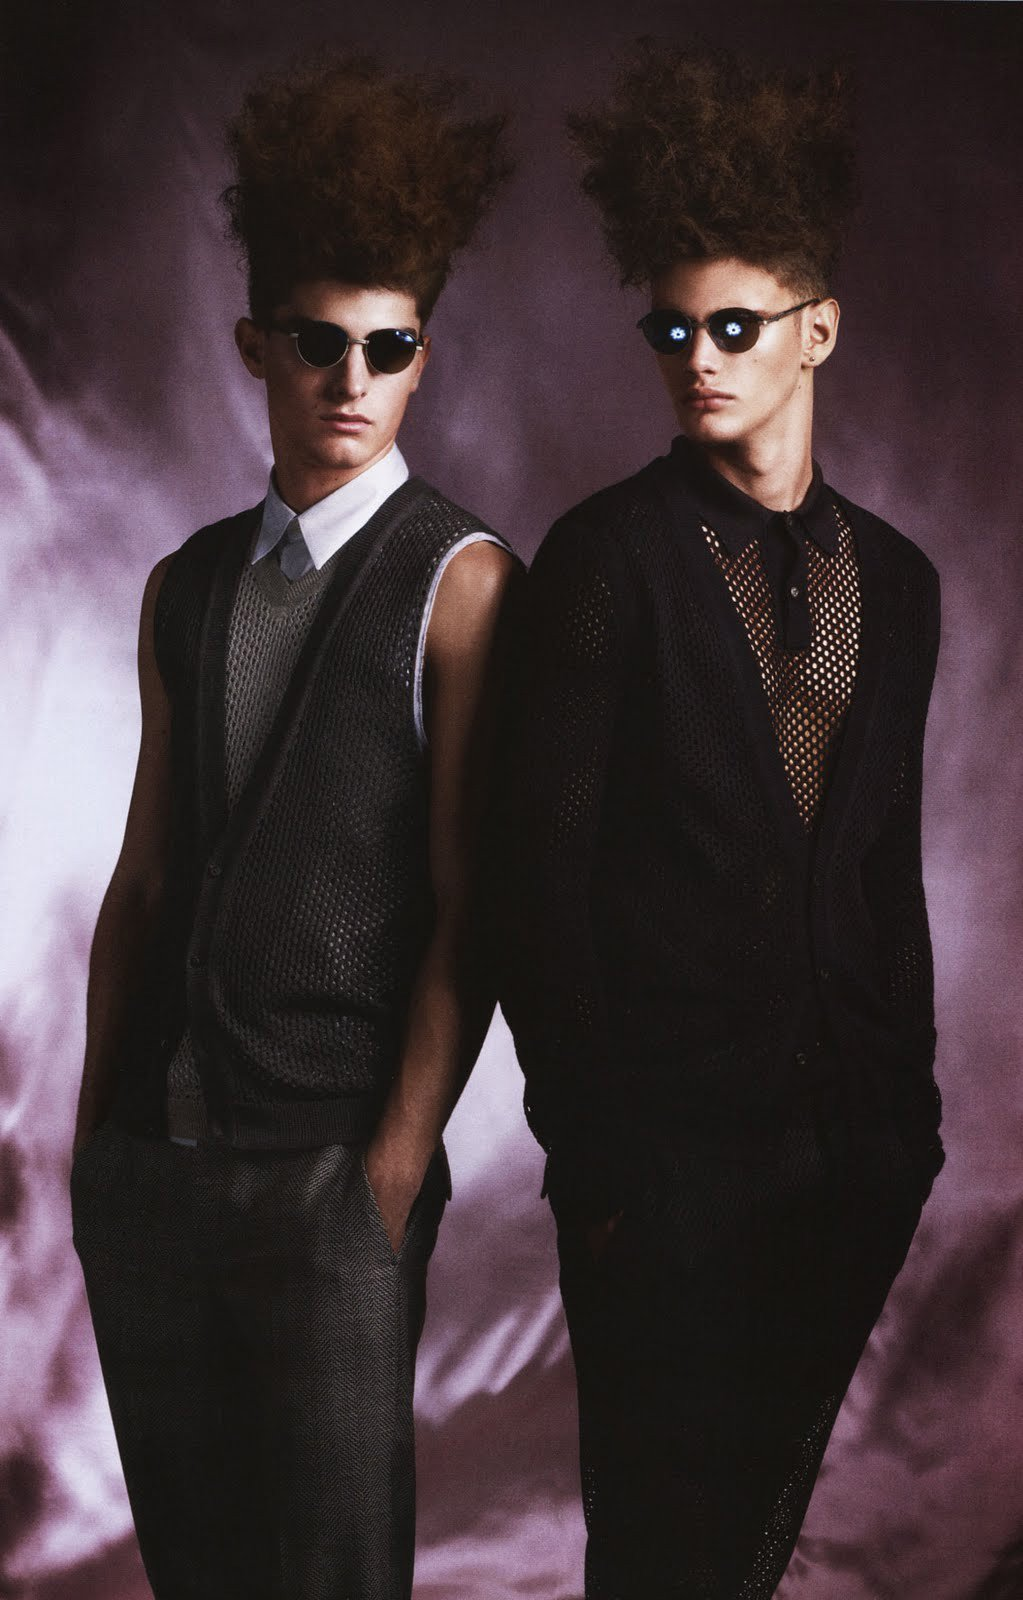 Paolo Anchisi & Joan Pedrola by Terry Gates for FHM Collections